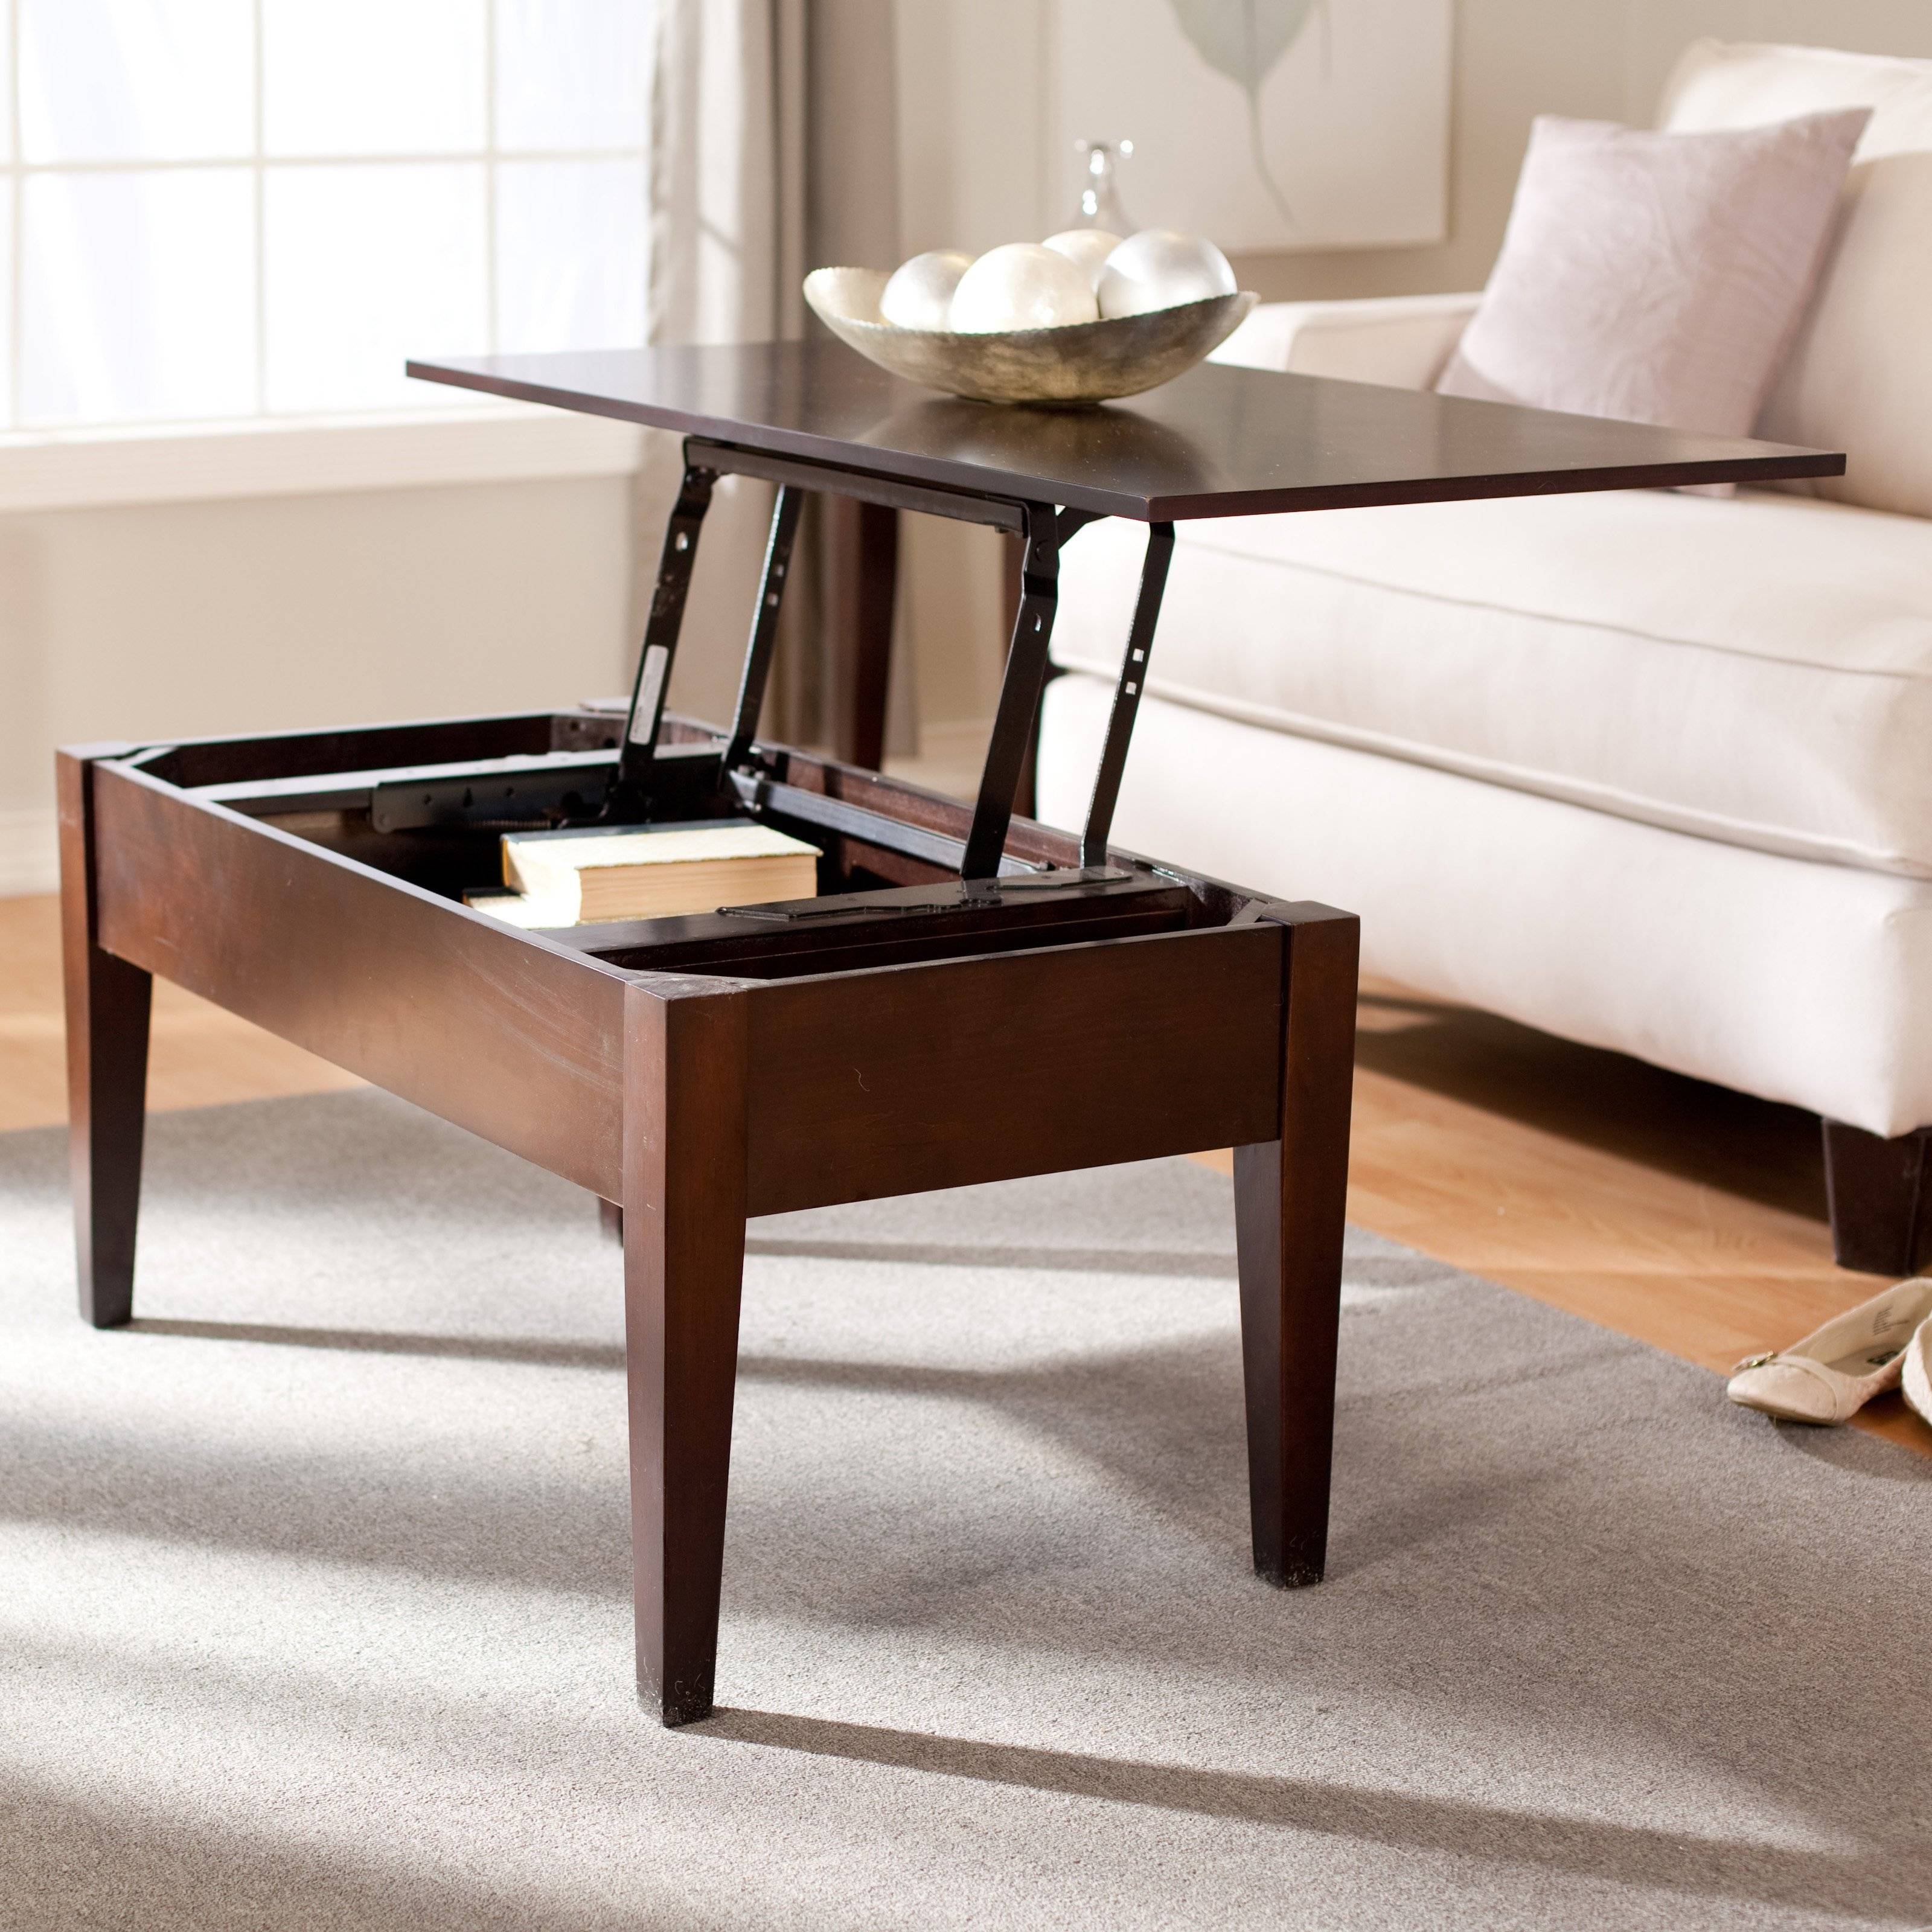 Turner Lift Top Coffee Table - Espresso - Walmart for Espresso Coffee Tables (Image 25 of 30)